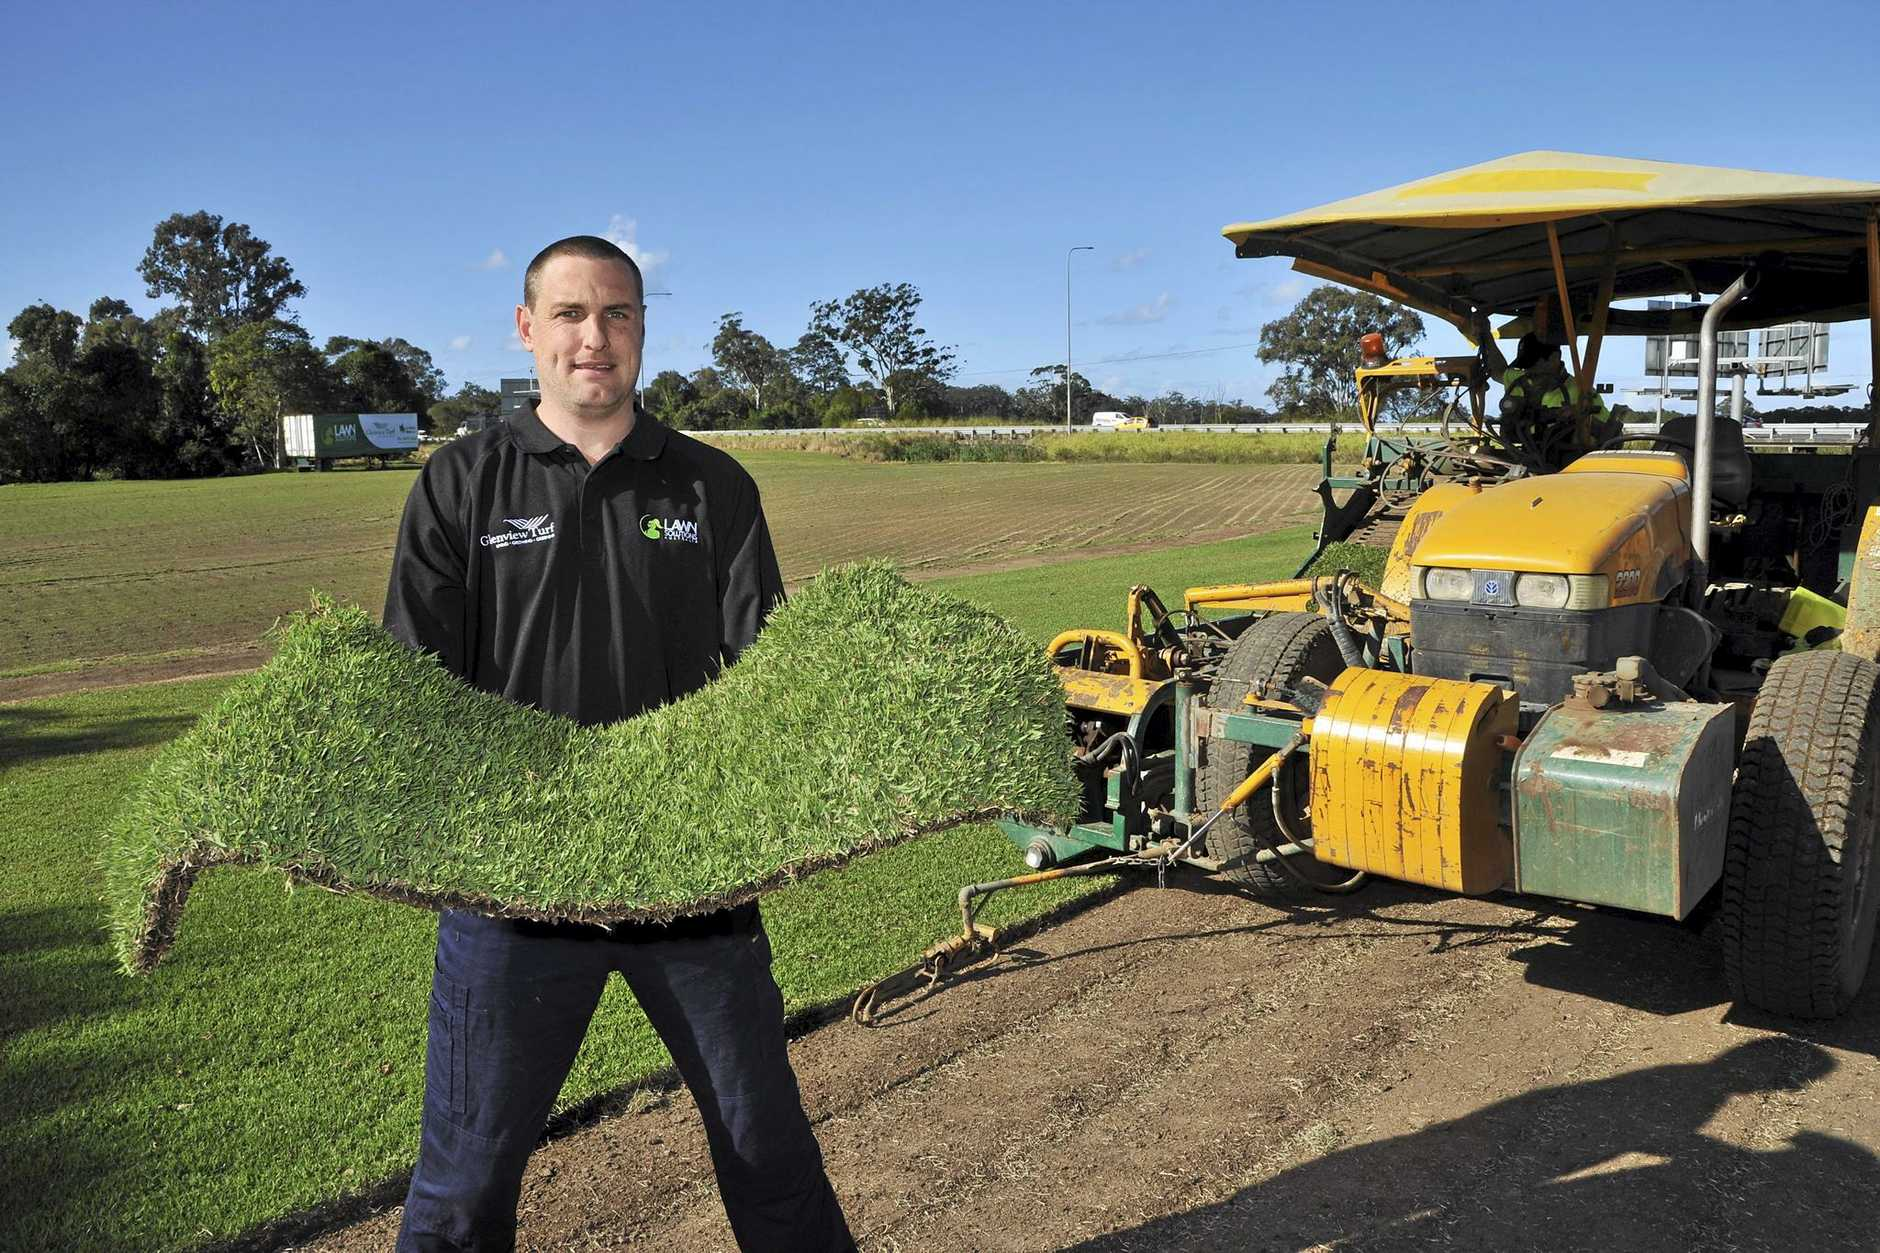 Glenview Turf Farm, Glenview. Sales and Trade manager, Adam Thornton with their Platinum Zoysia grass which has been chosen for the City of Aura.